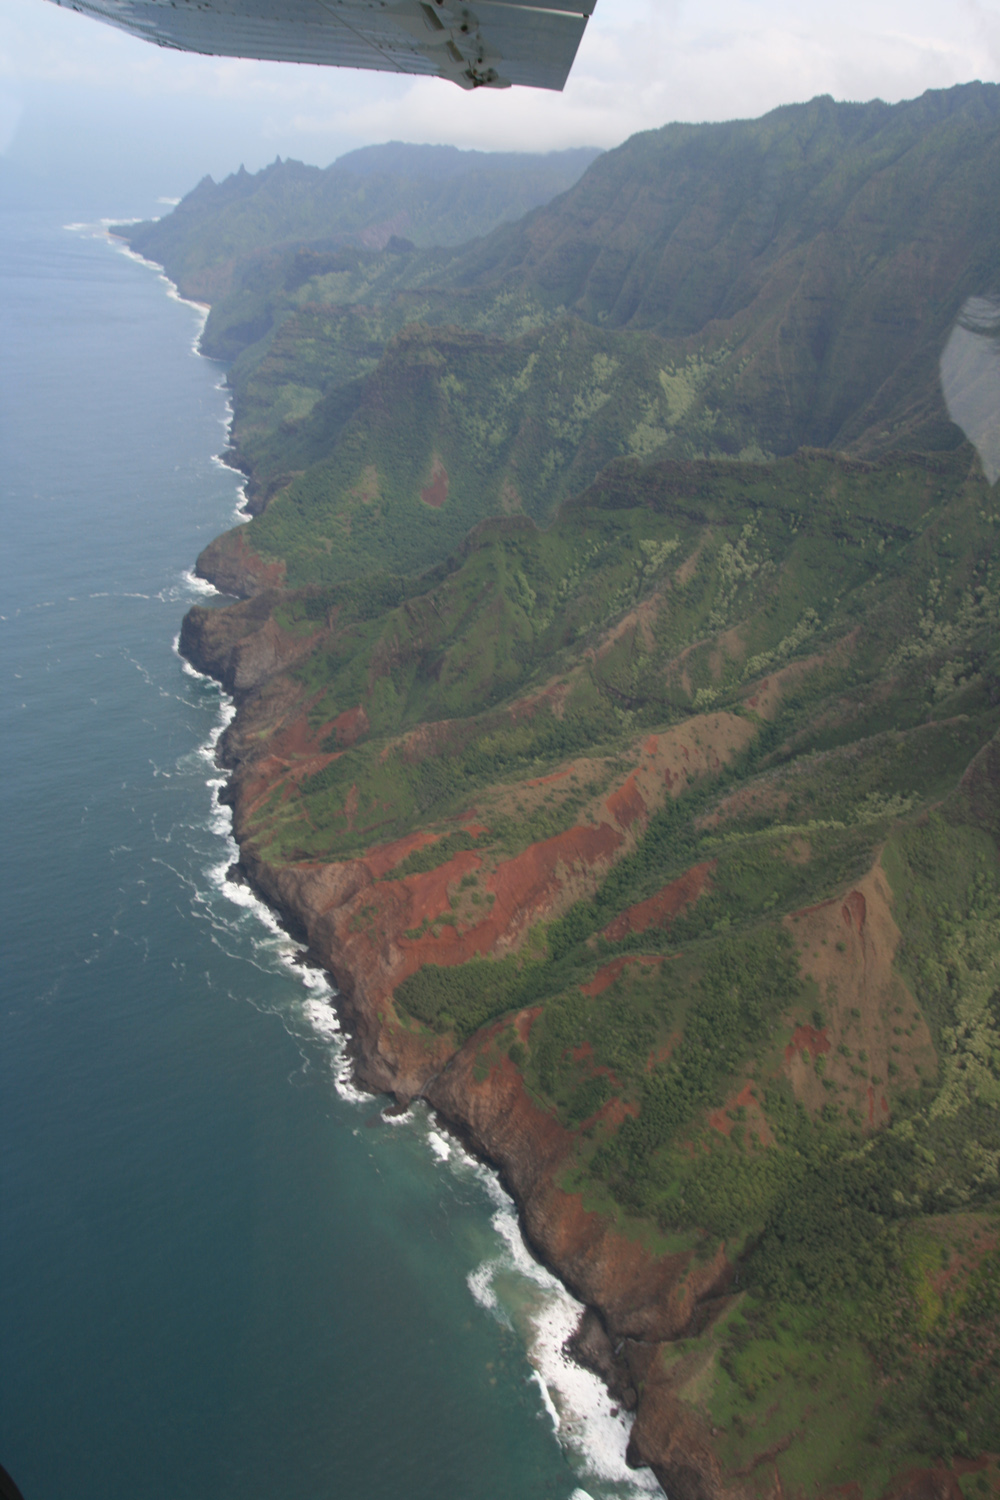 view-of-trail-from-air.jpg